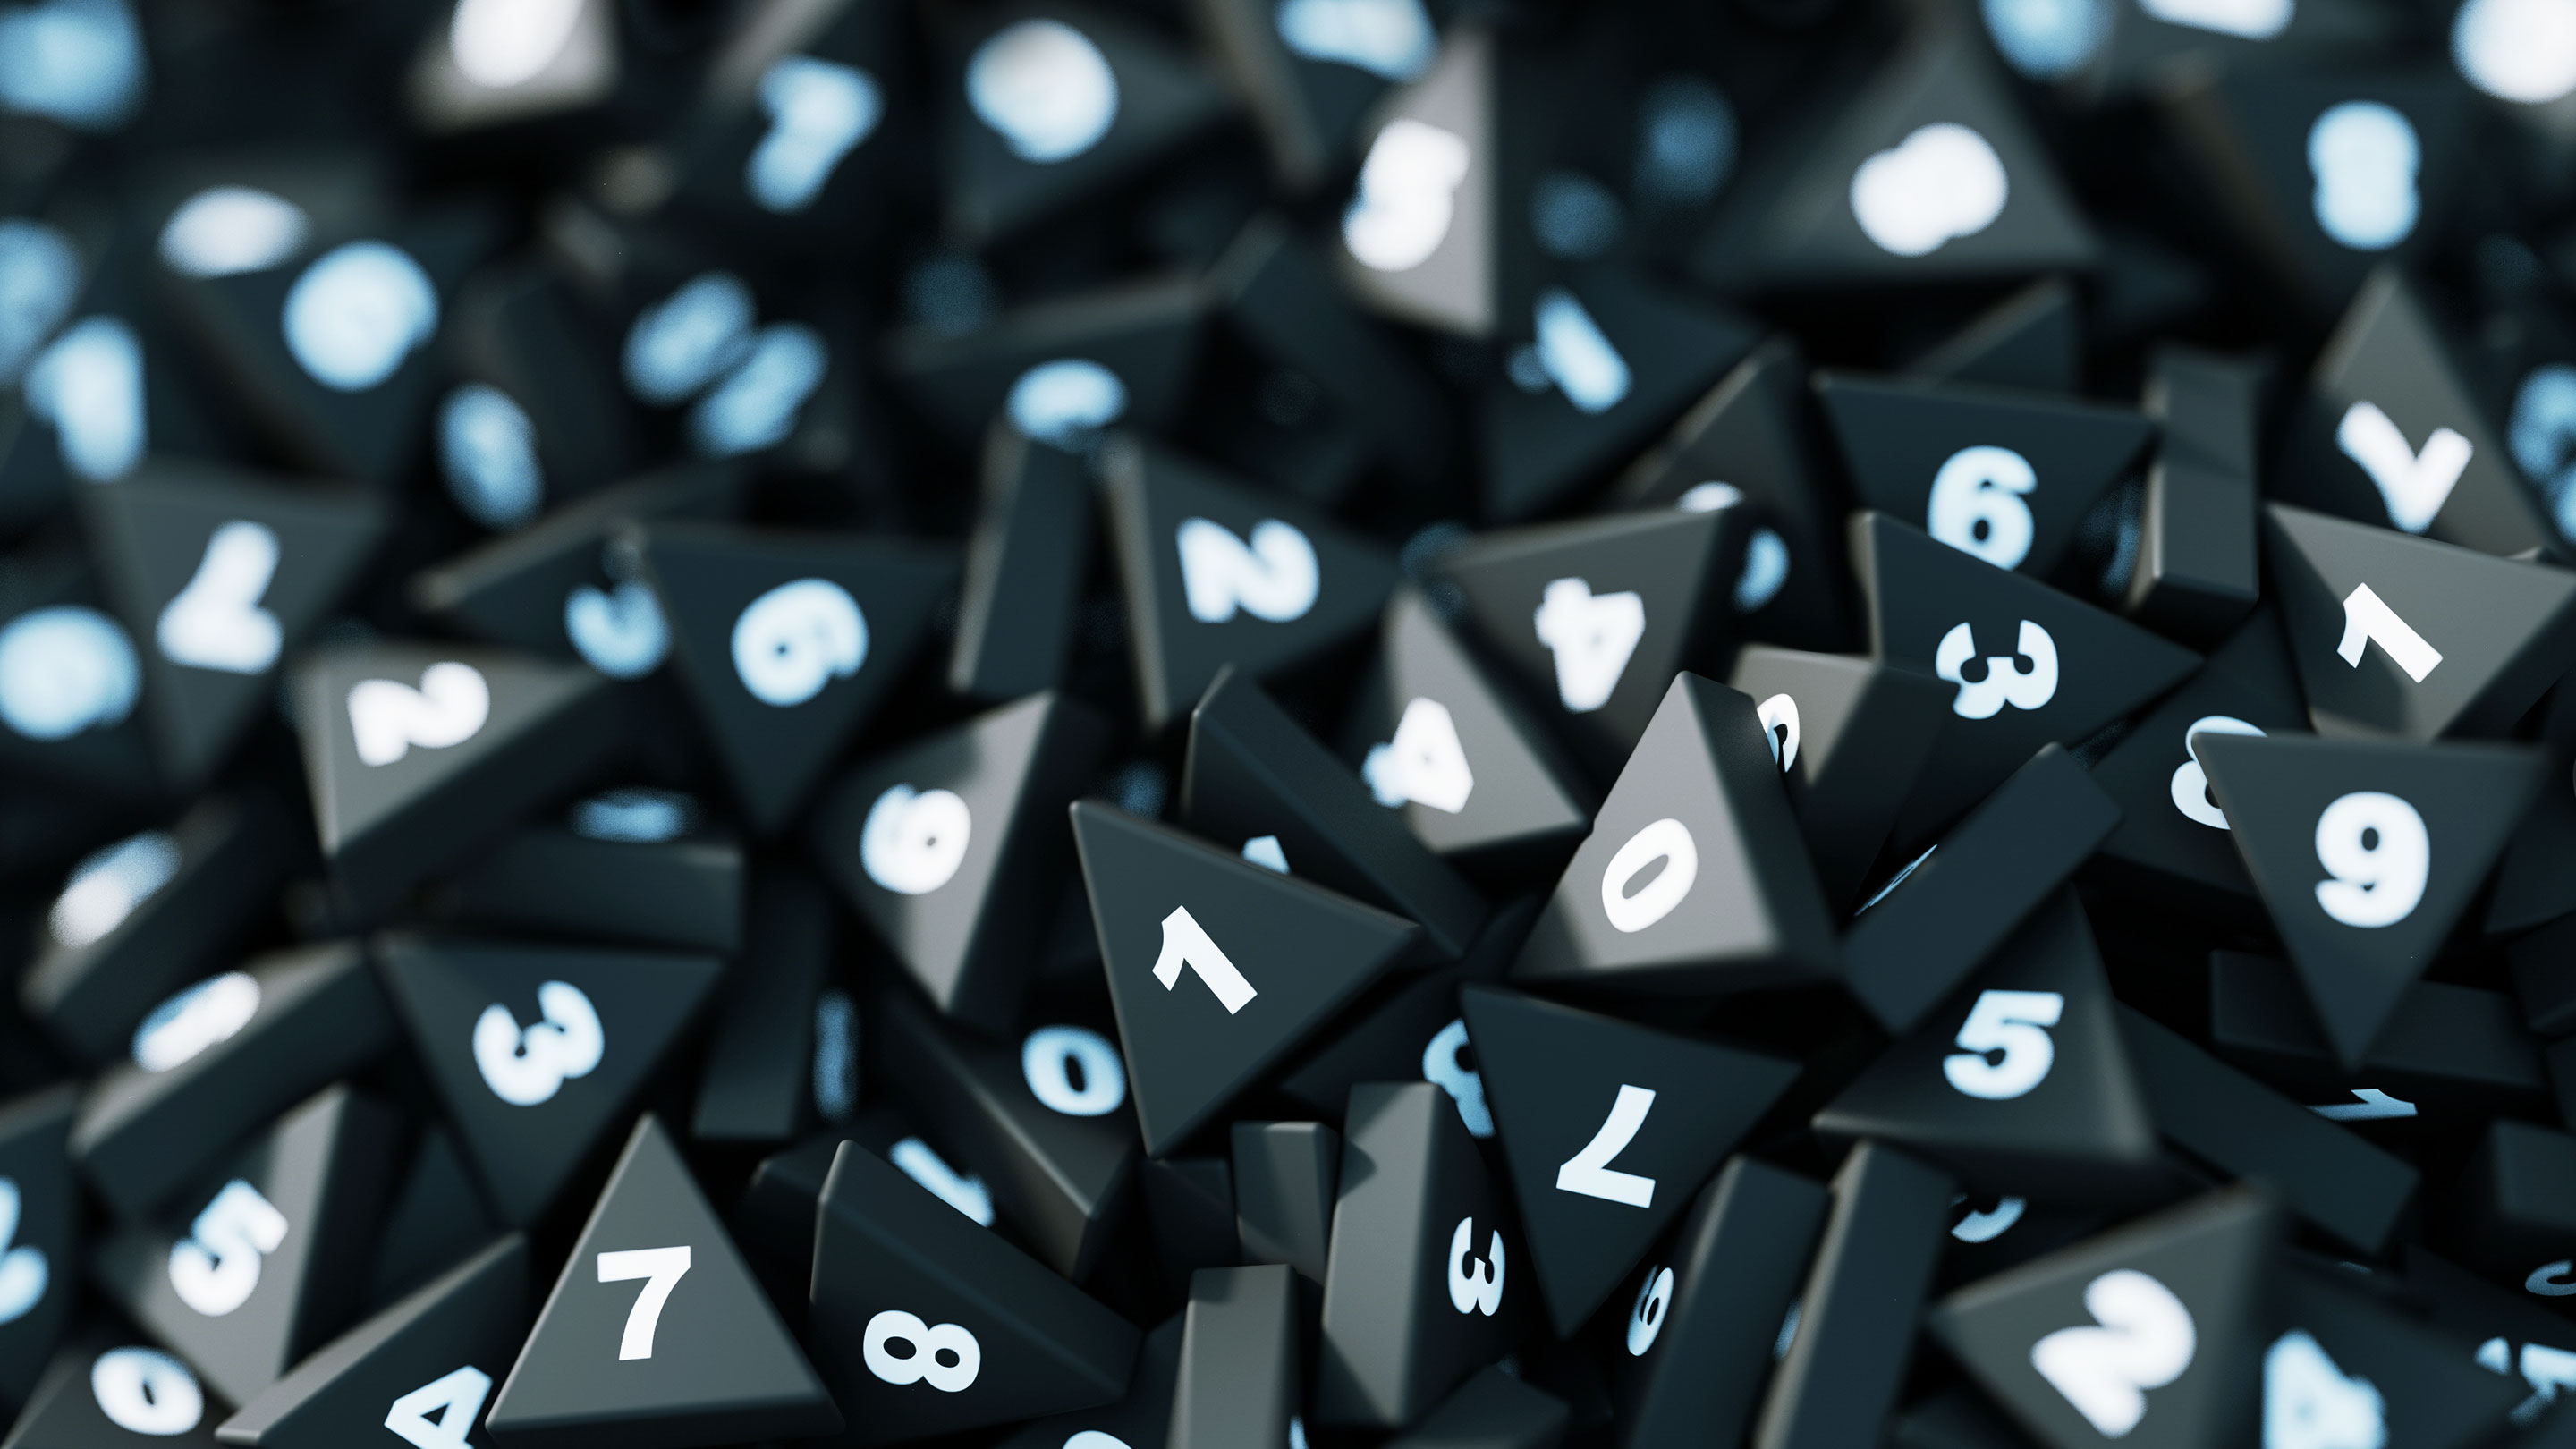 How Randomness Can Make Math Easier